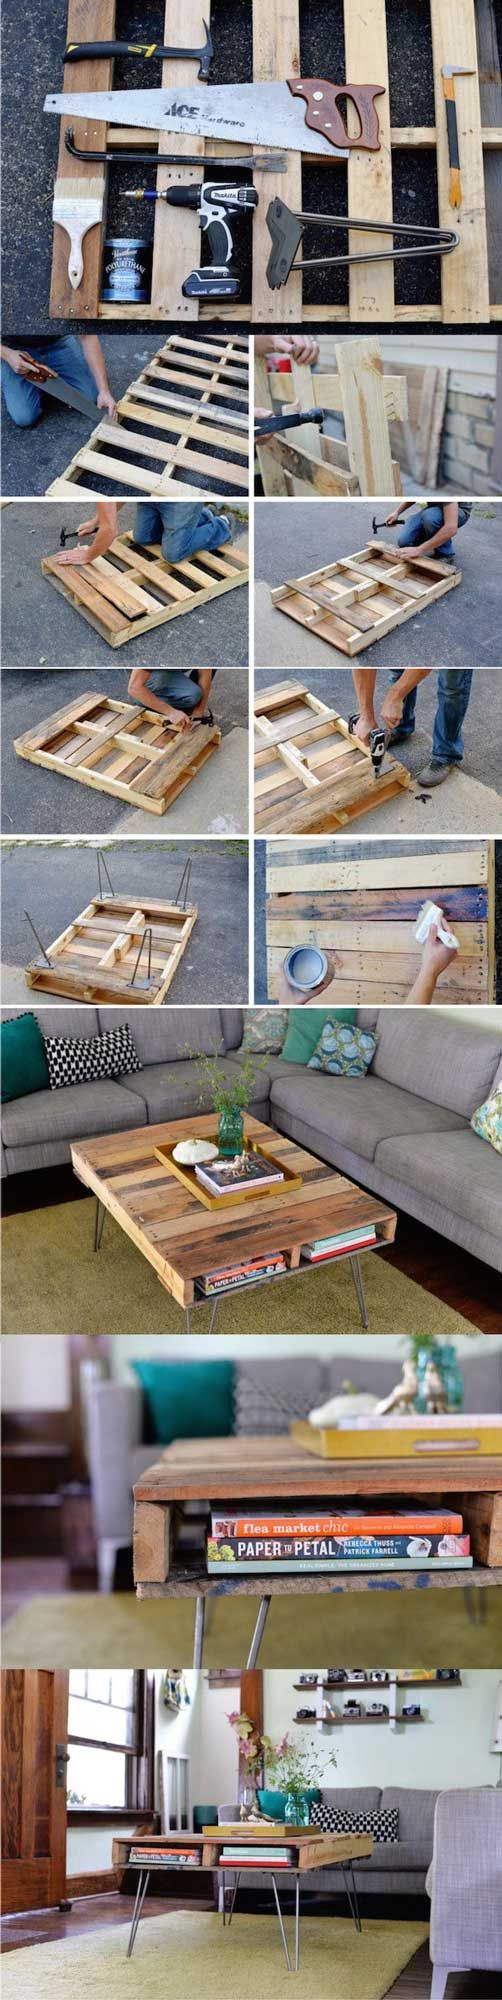 Photo of Design Ideas from Fruit Crates | the Dekordiyo